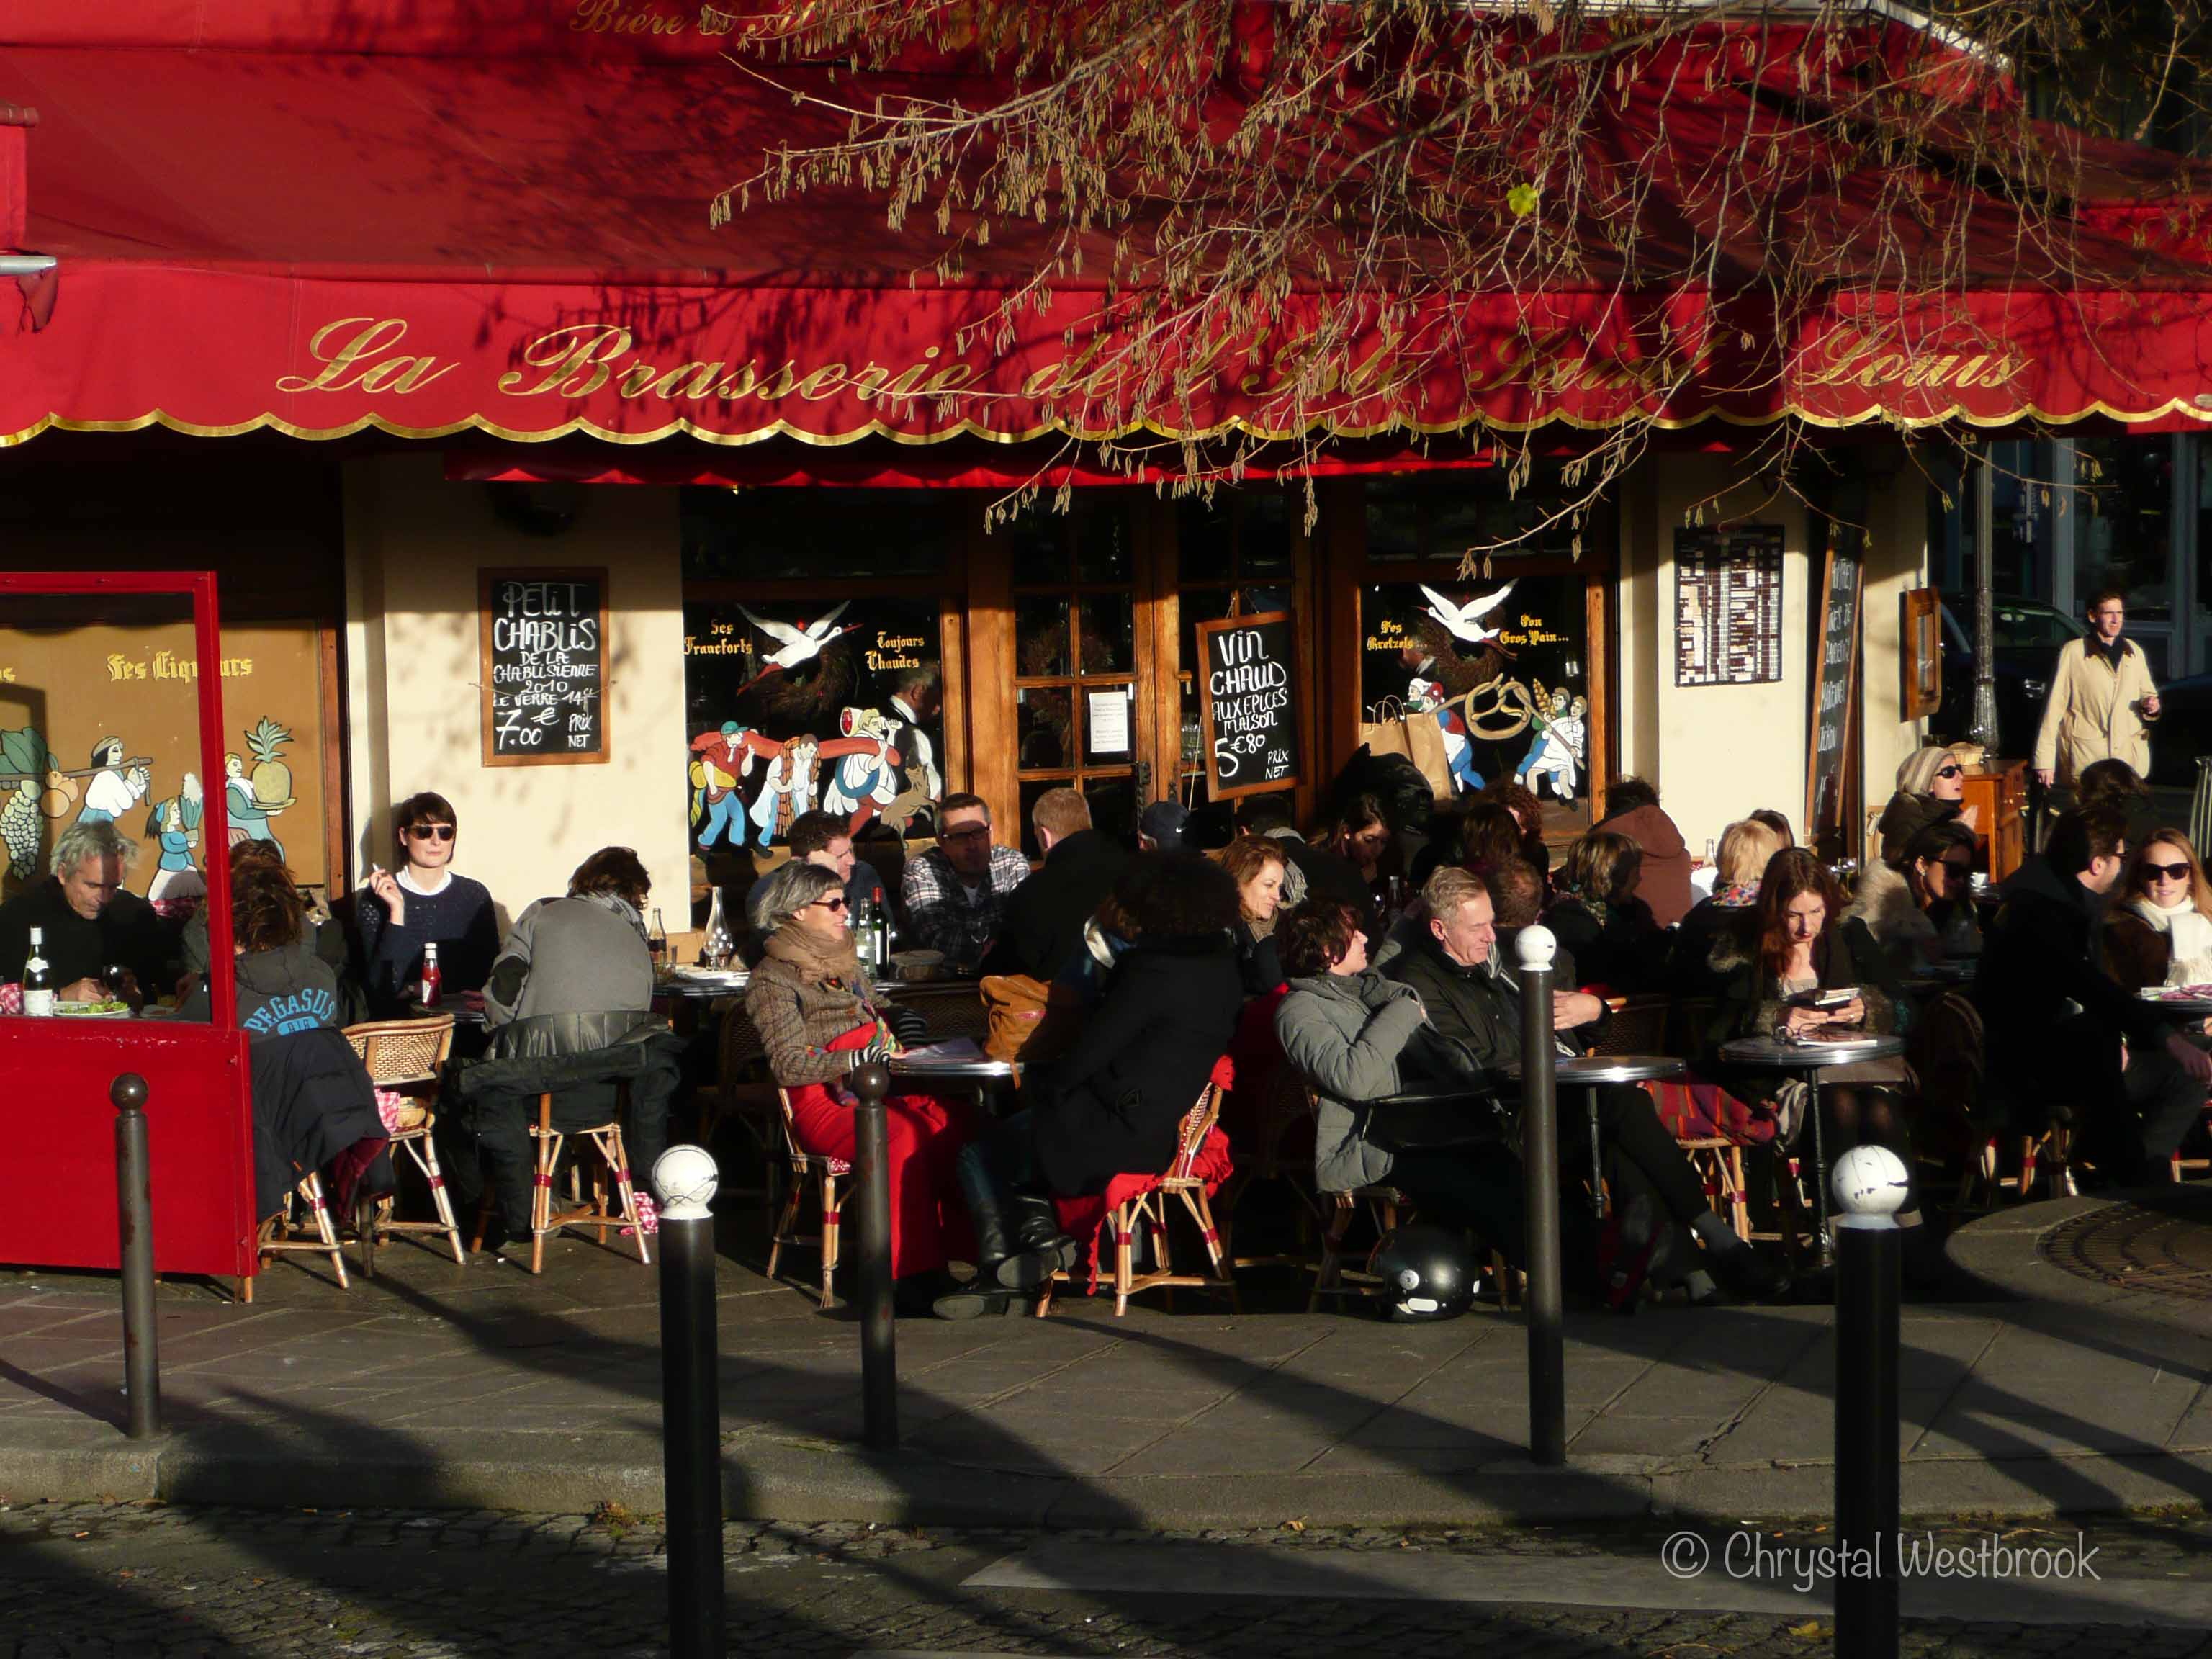 [IMAGE] Sidewalk cafe in Paris